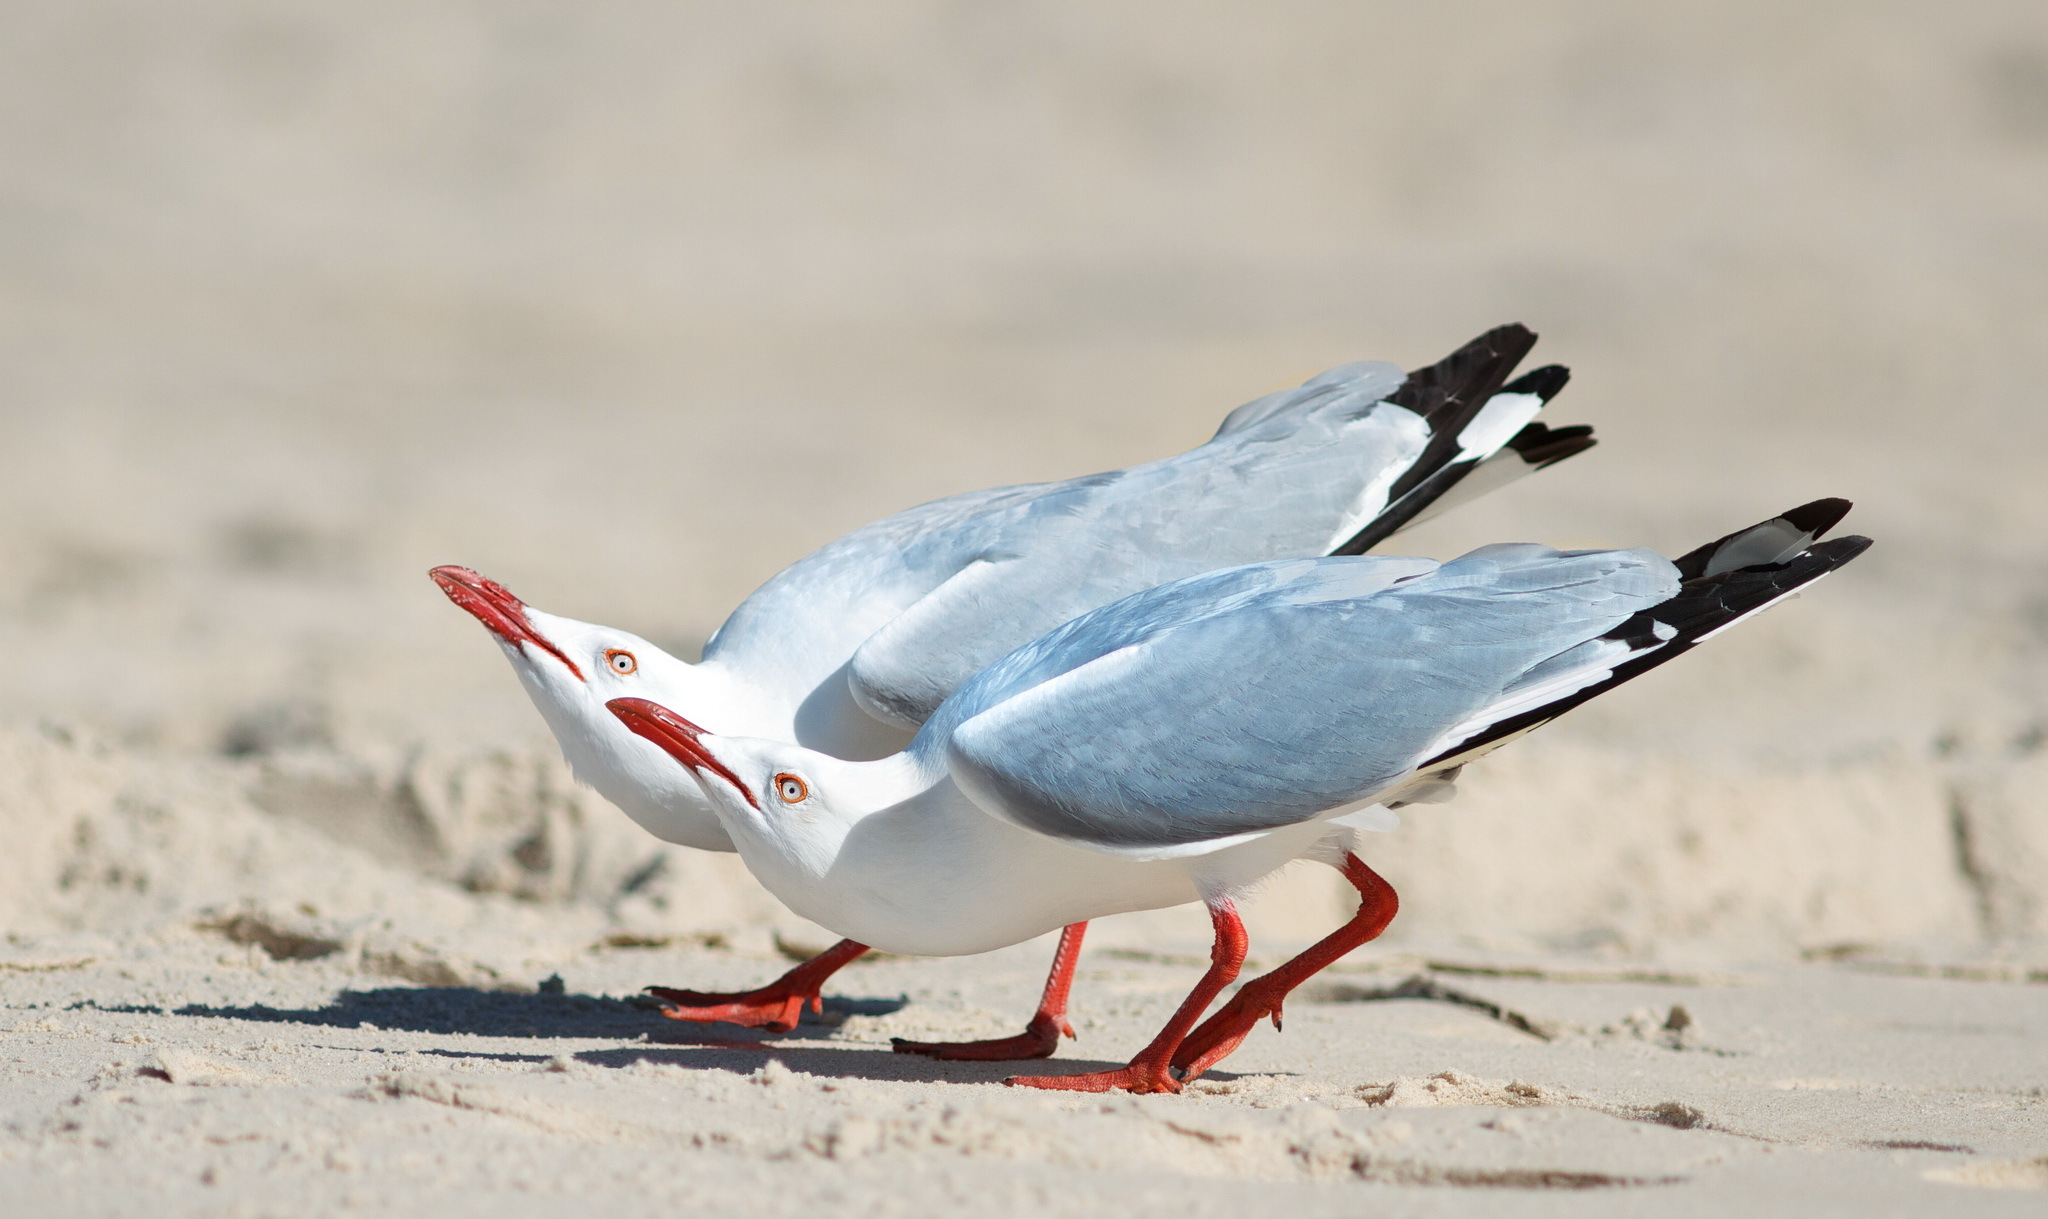 56544 download wallpaper Animals, Couple, Pair, Birds, Seagulls screensavers and pictures for free